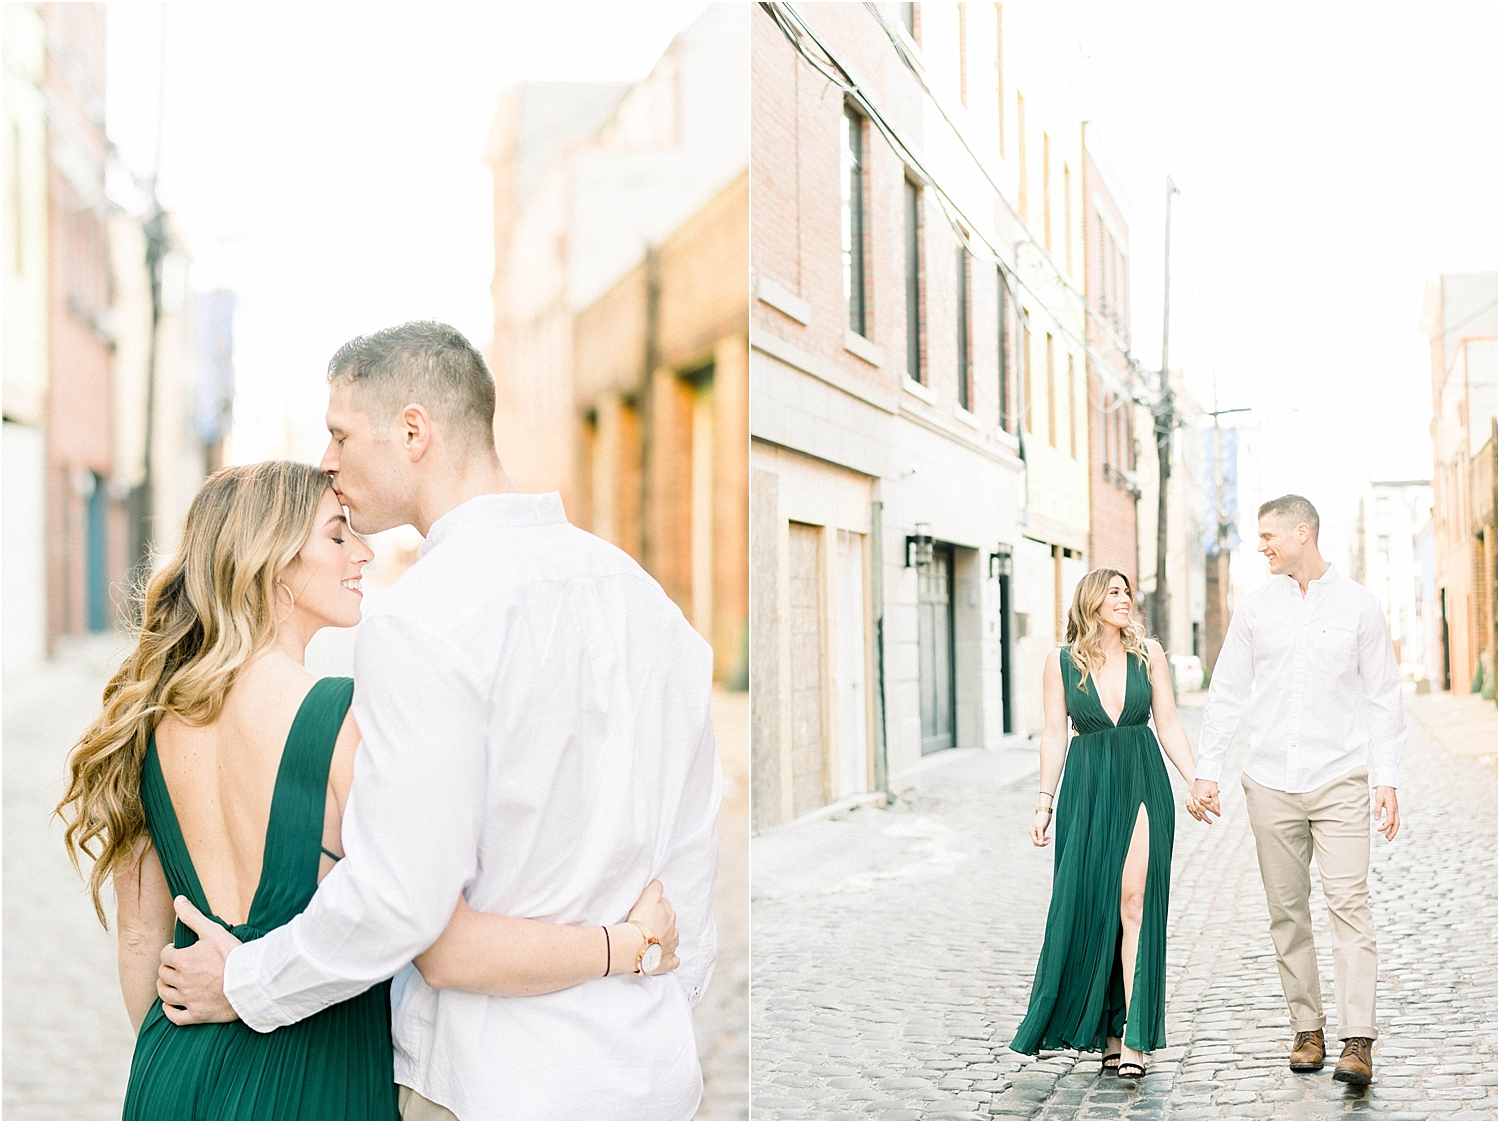 hoboken engagement session nj wedding photographer_0007.jpg